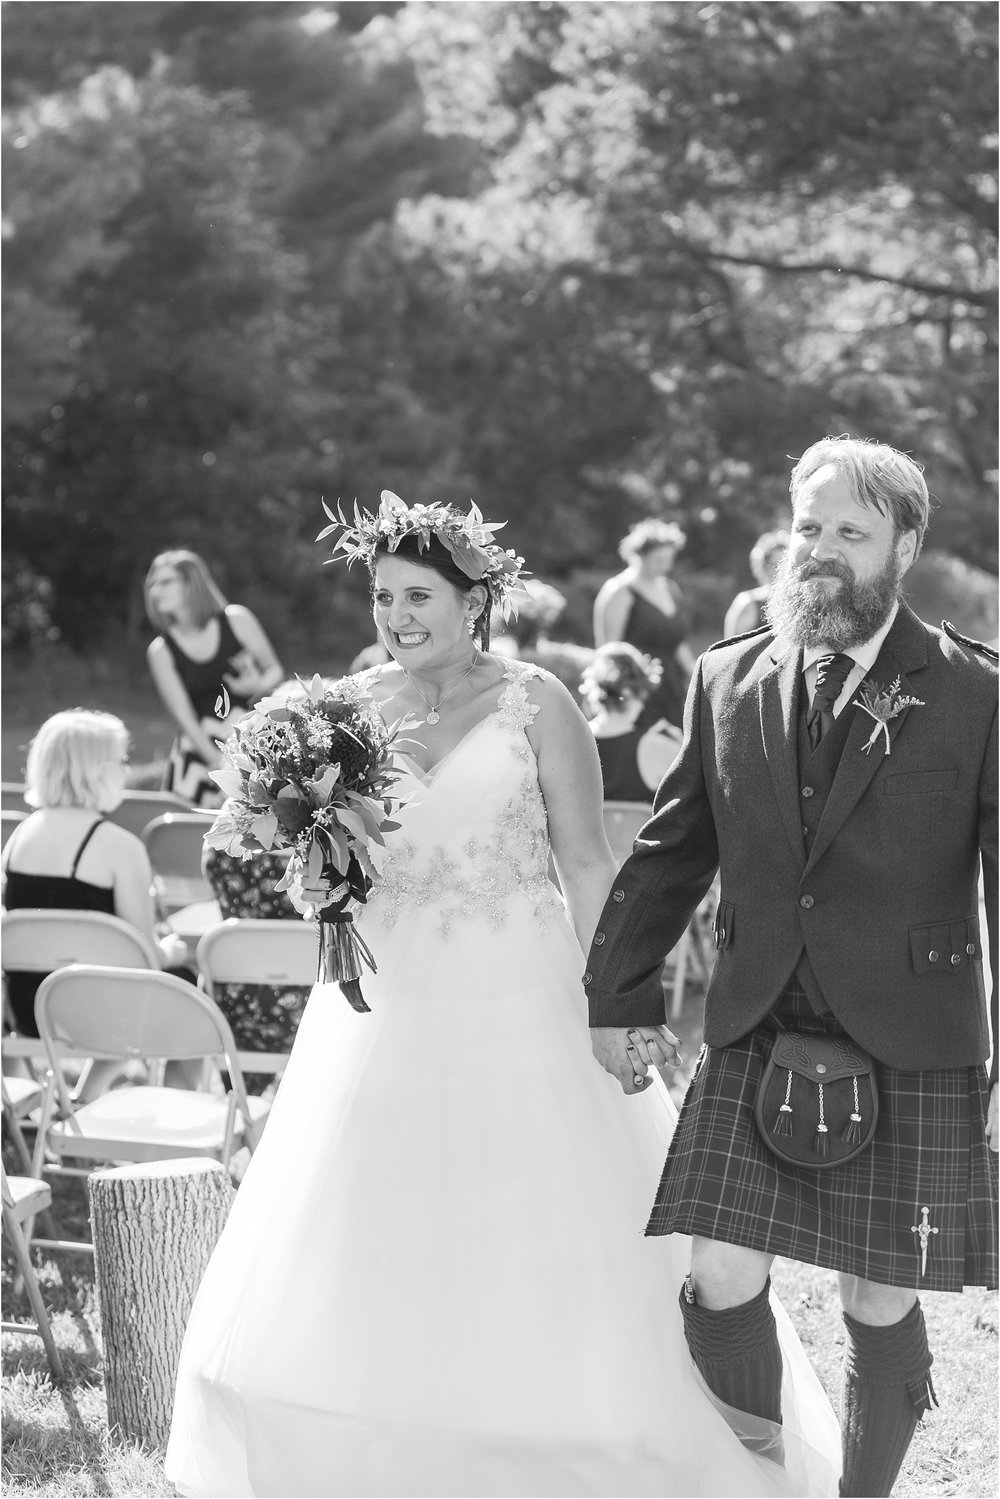 scottish-inspired-wedding-photos-in-the-country-in-port-sanilac-michigan-by-courtney-carolyn-photography_0033.jpg